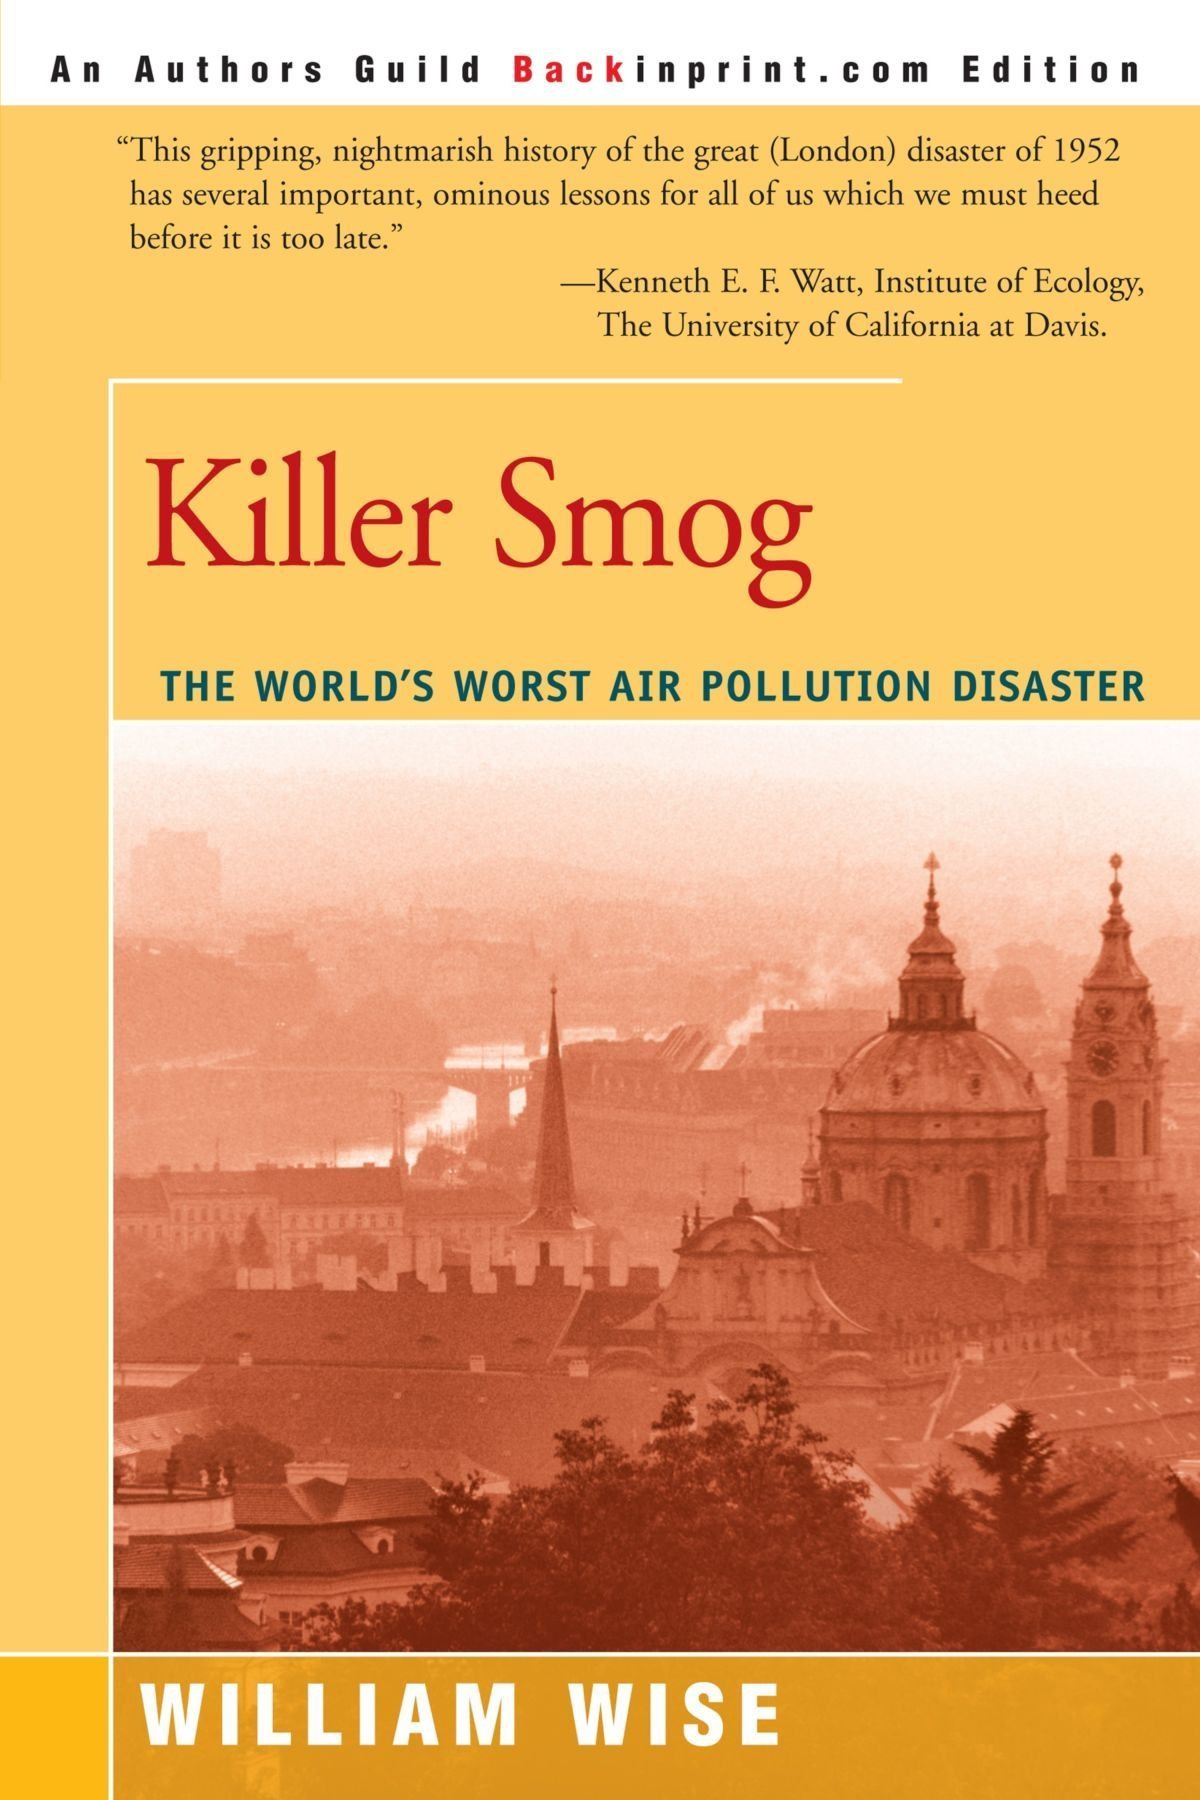 To learn more about the 1948, read Killer Smog: The World's Worst Air Pollution Disaster by William Wise. Click the link below to learn more about this book.